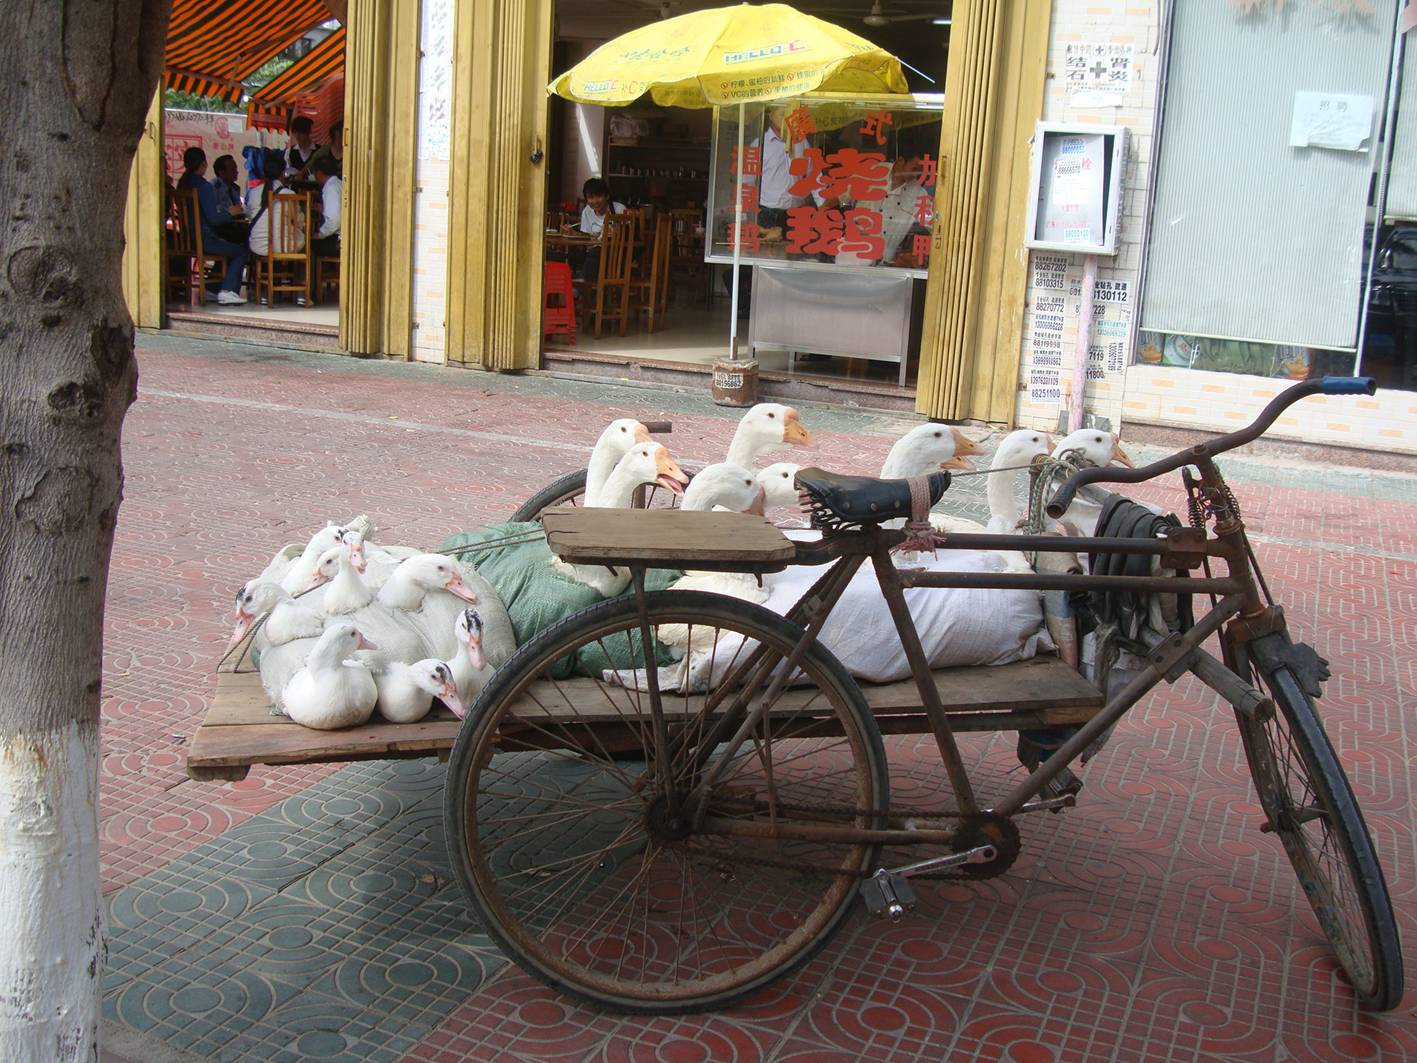 Picture:  You know your food is fresh when you see it delivered.  Sanya goose restaurant, Hainan Island, China